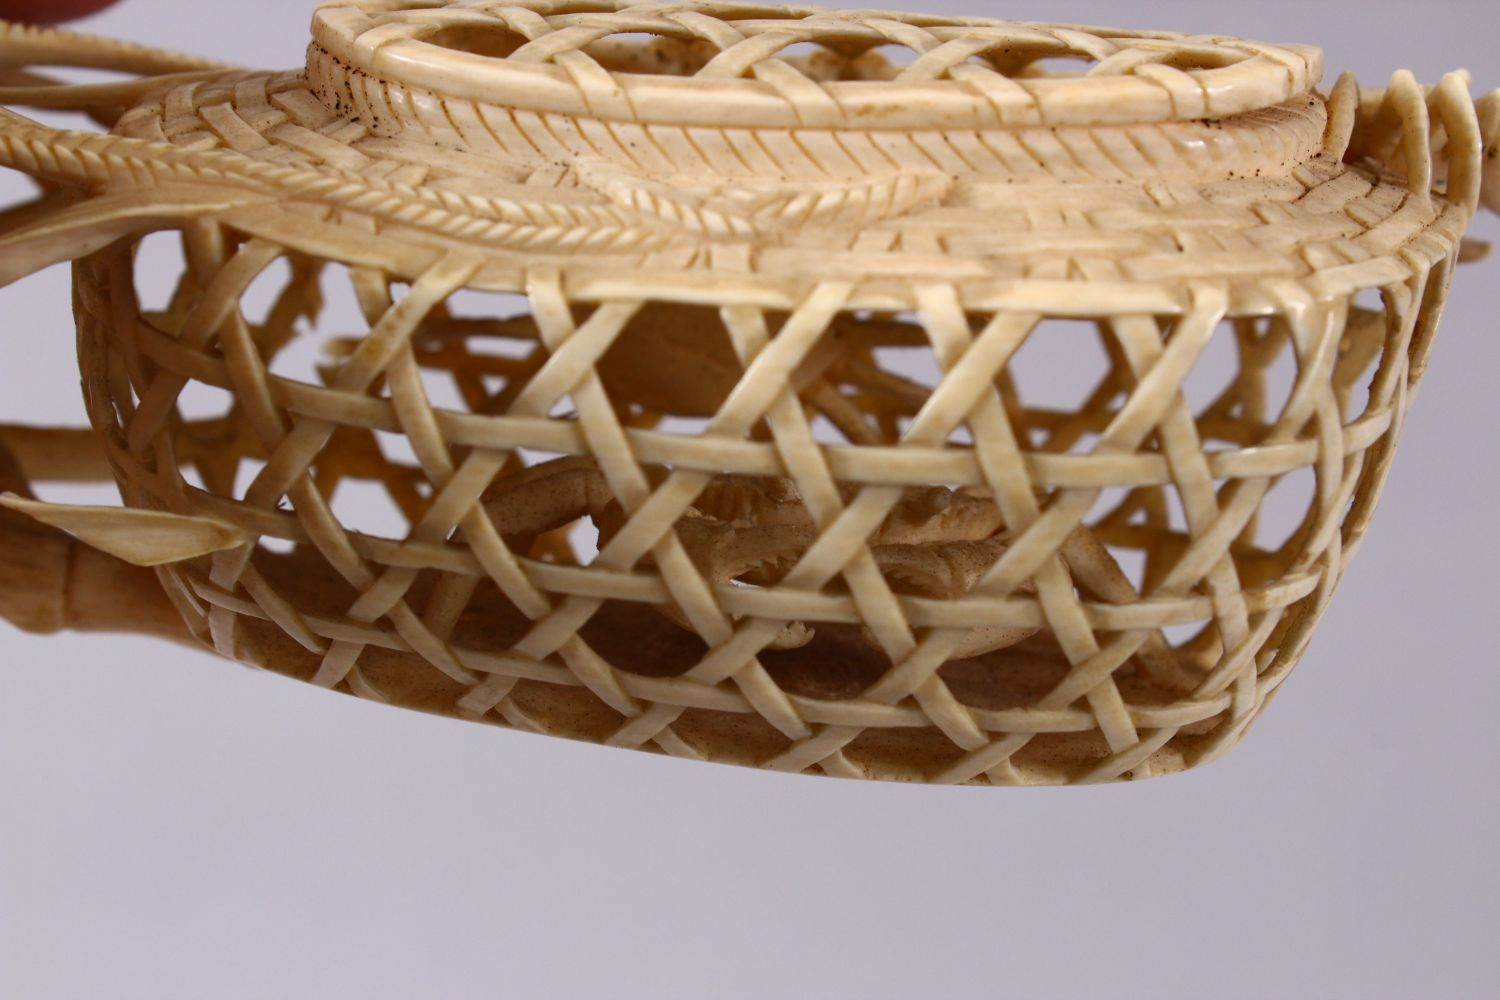 A JAPANESE MEIJI PERIOD CARVED IVORY CRAB GROUP OKIMONO - depicting a basket of crabs with three - Image 8 of 11